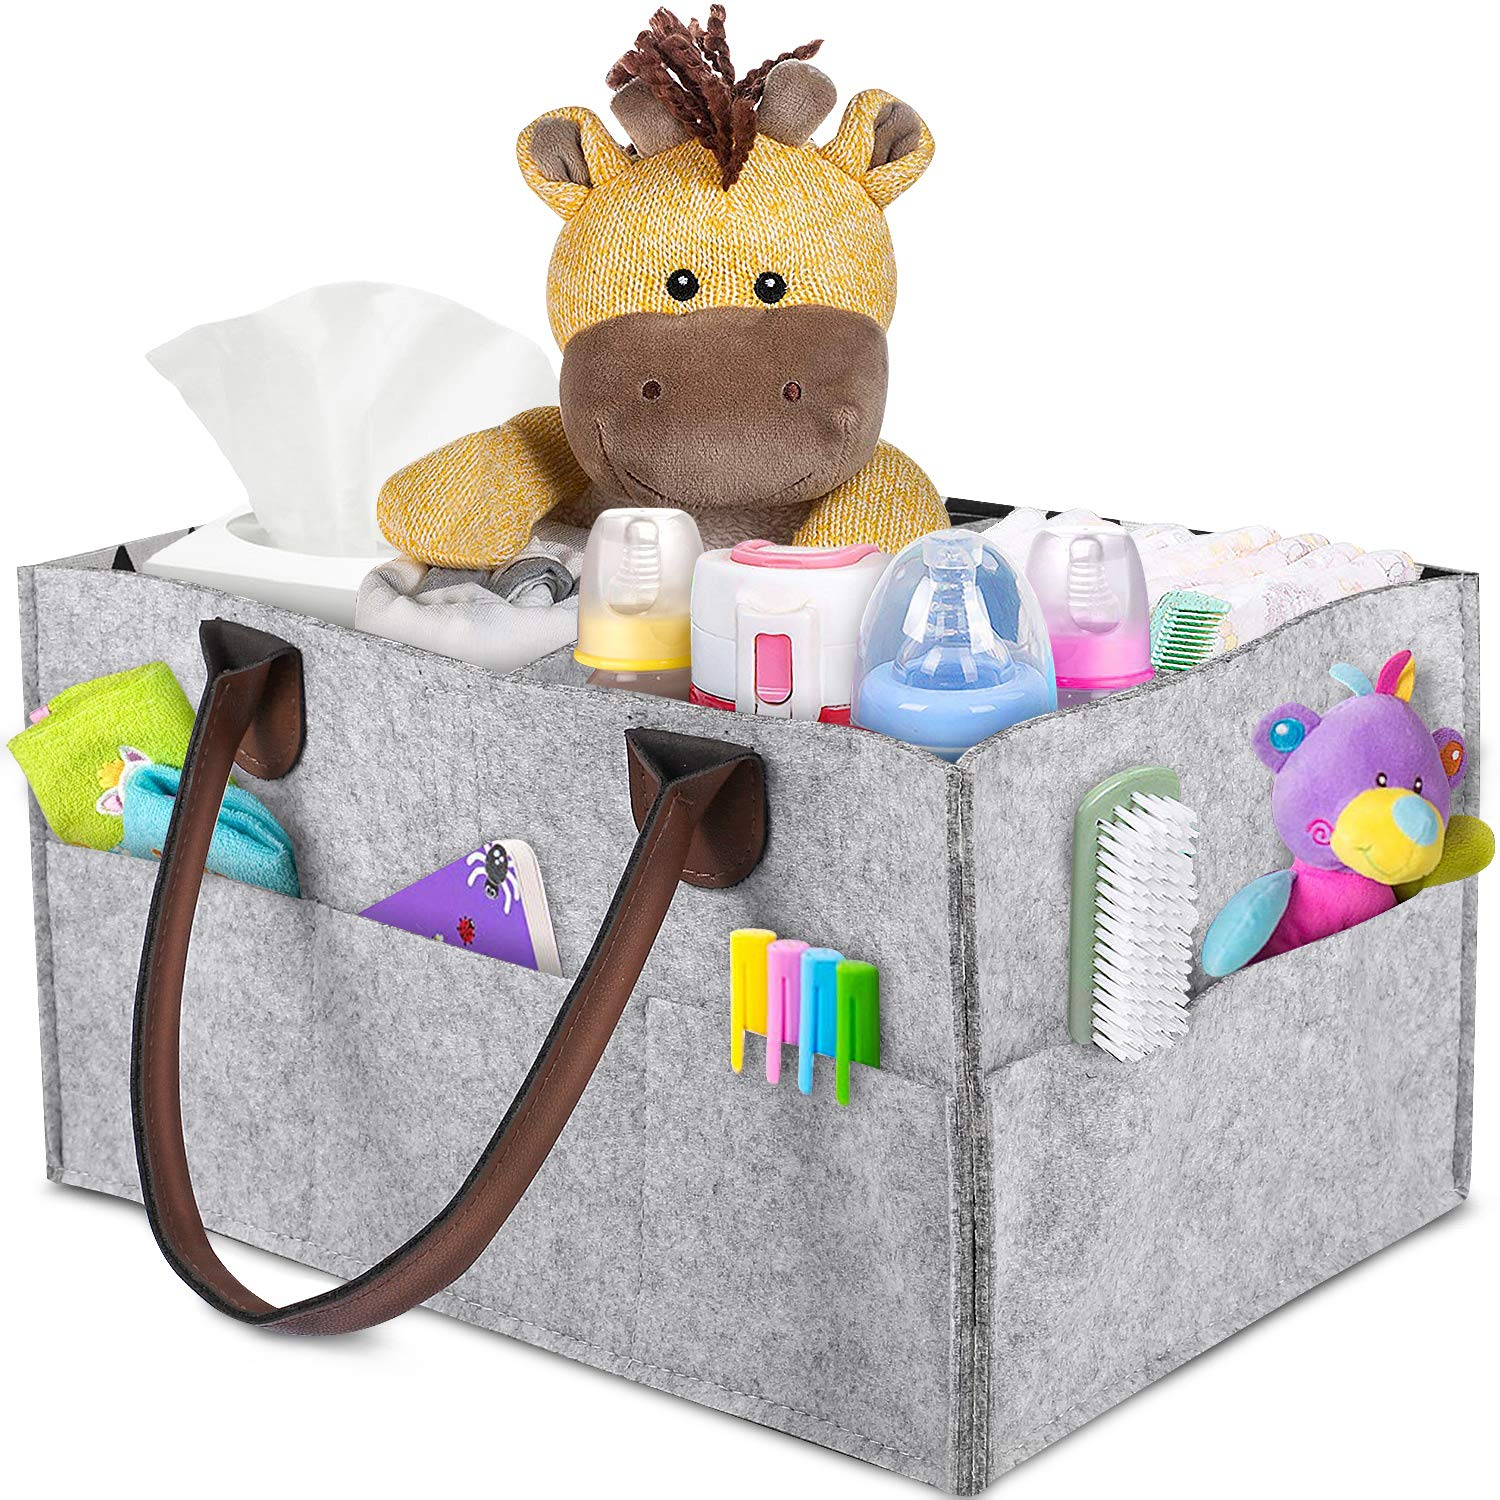 Baby Diaper Caddy - Nursery Caddy Organizer Basket | Portable Diaper Caddy with Changing Pad | Car Travel Bag Storage Bin | Newborn Registry Must Haves for Toys, Burp Cloths, Pacifiers, Creams, Wipes FYLINA